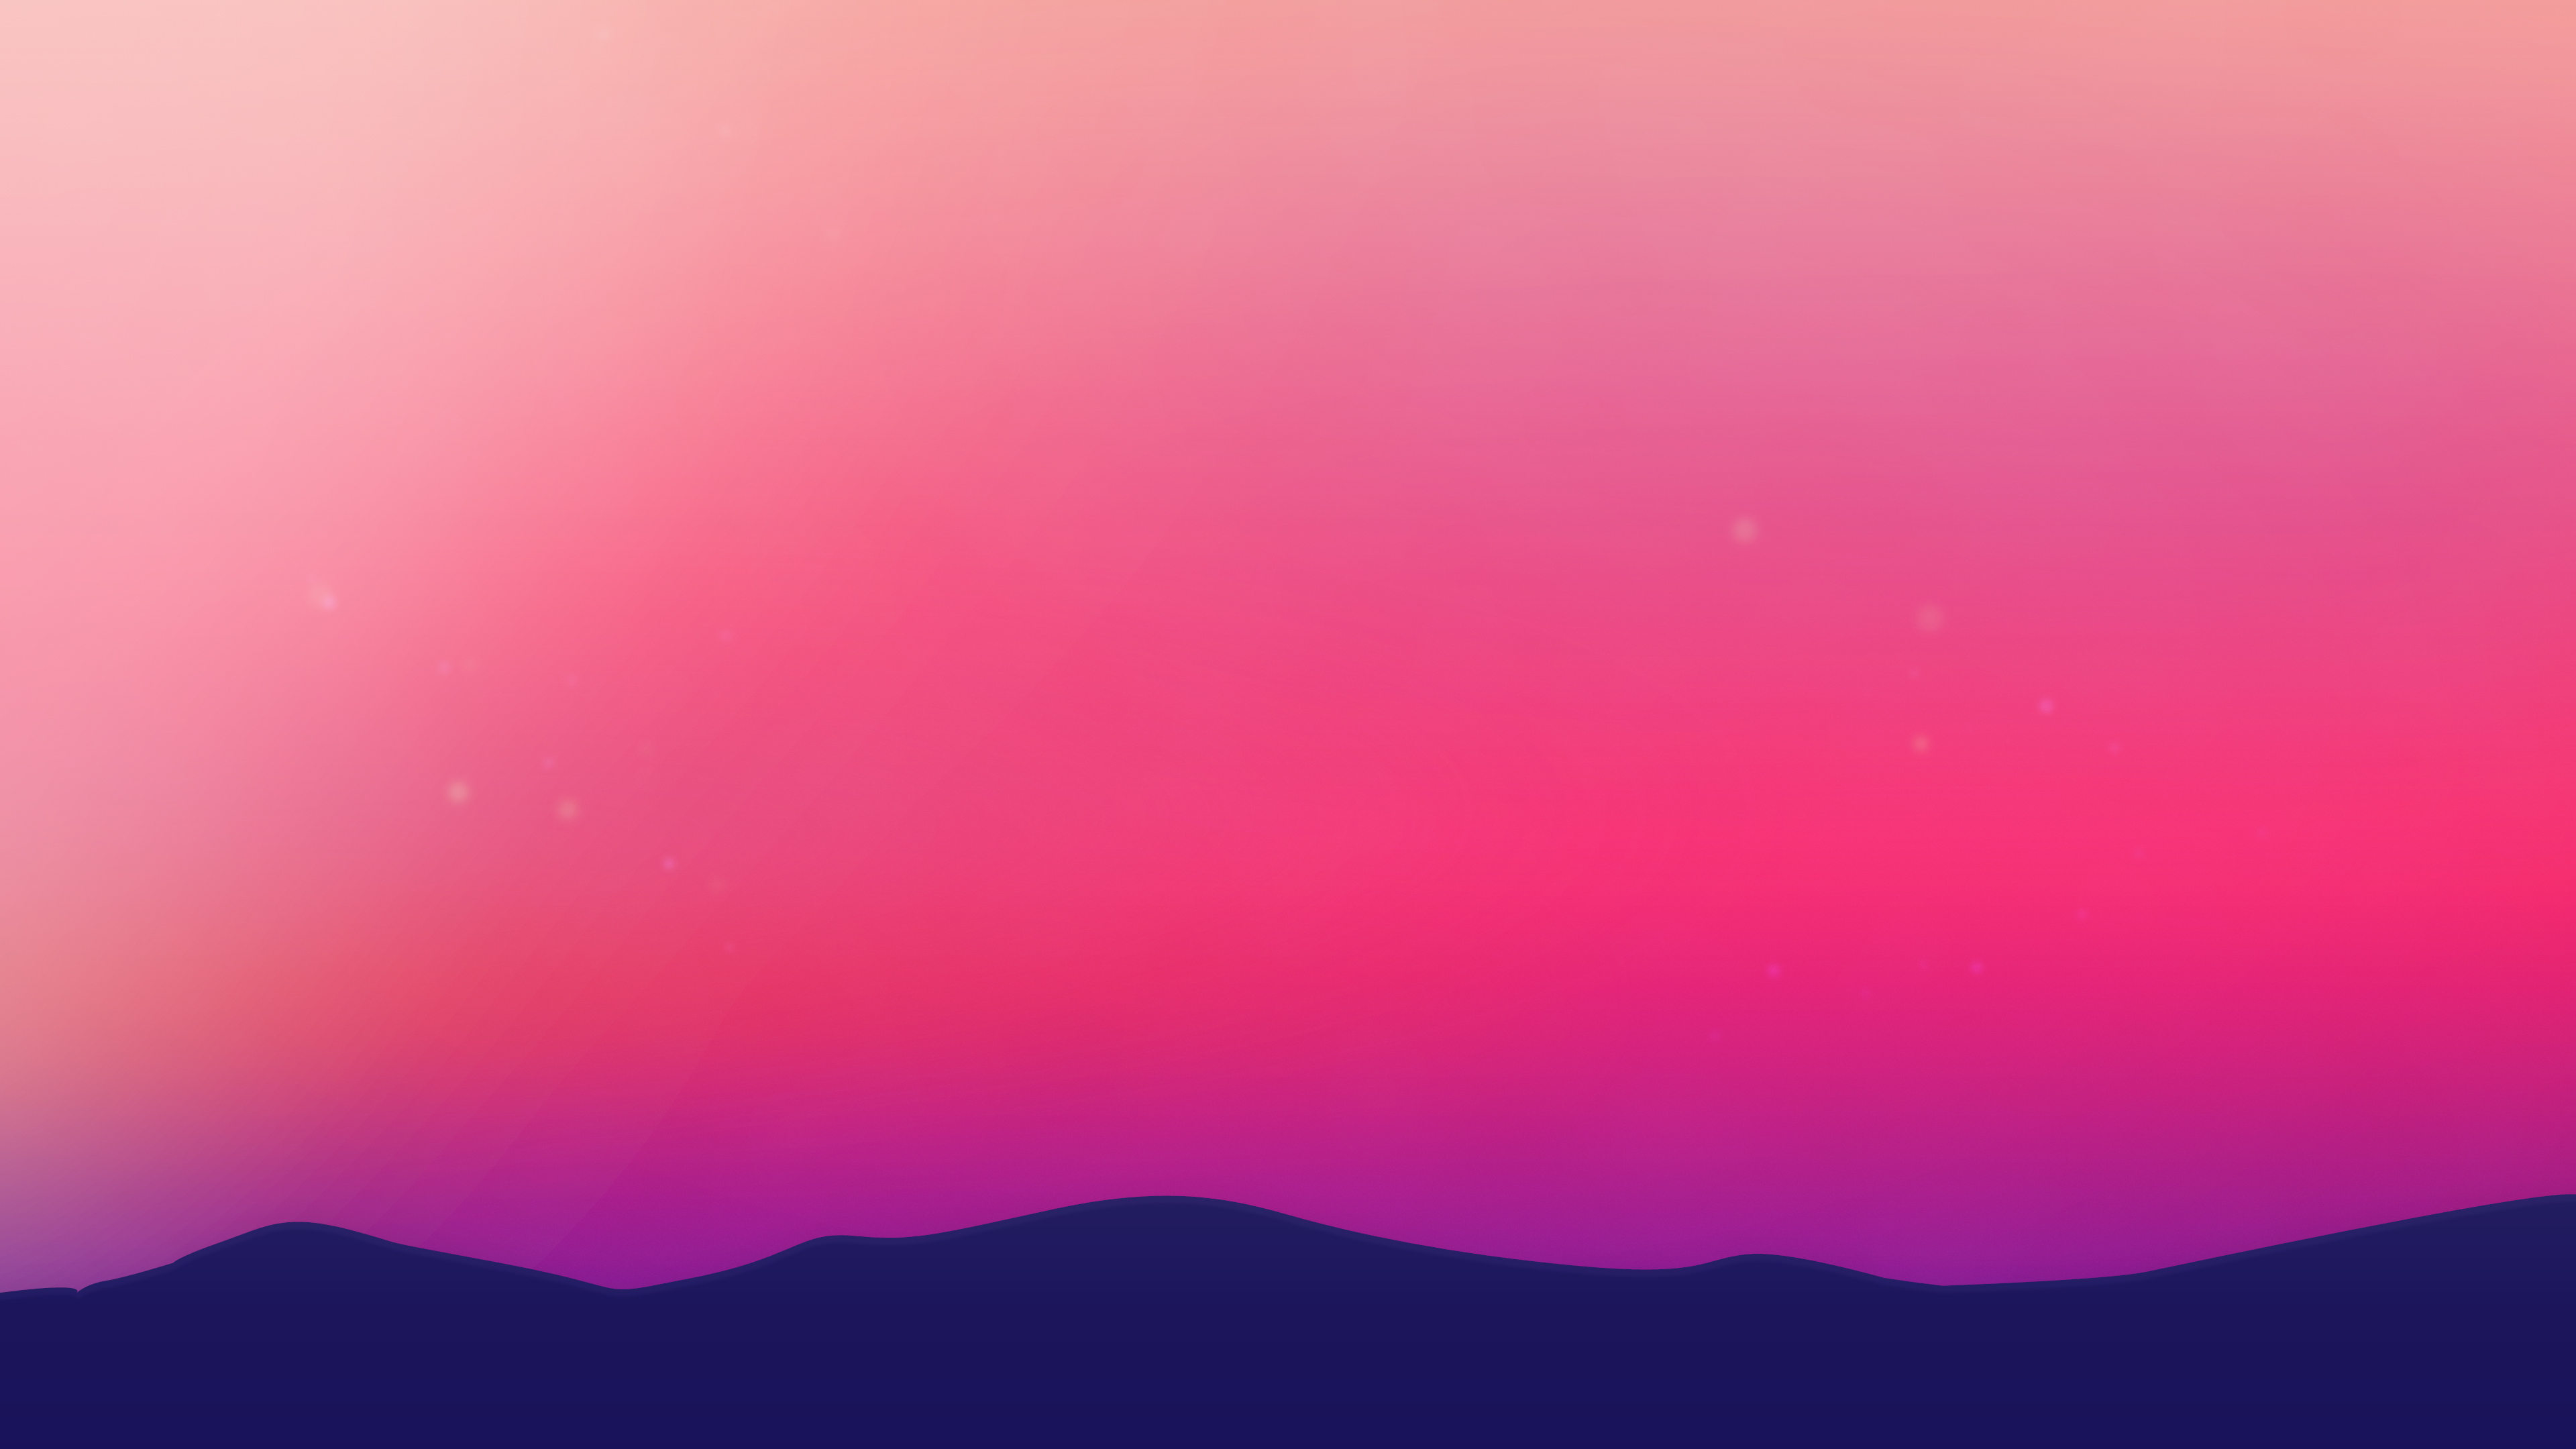 640x1136 Purple Landscape Scenery Minimalist 4k Iphone 5 5c 5s Se